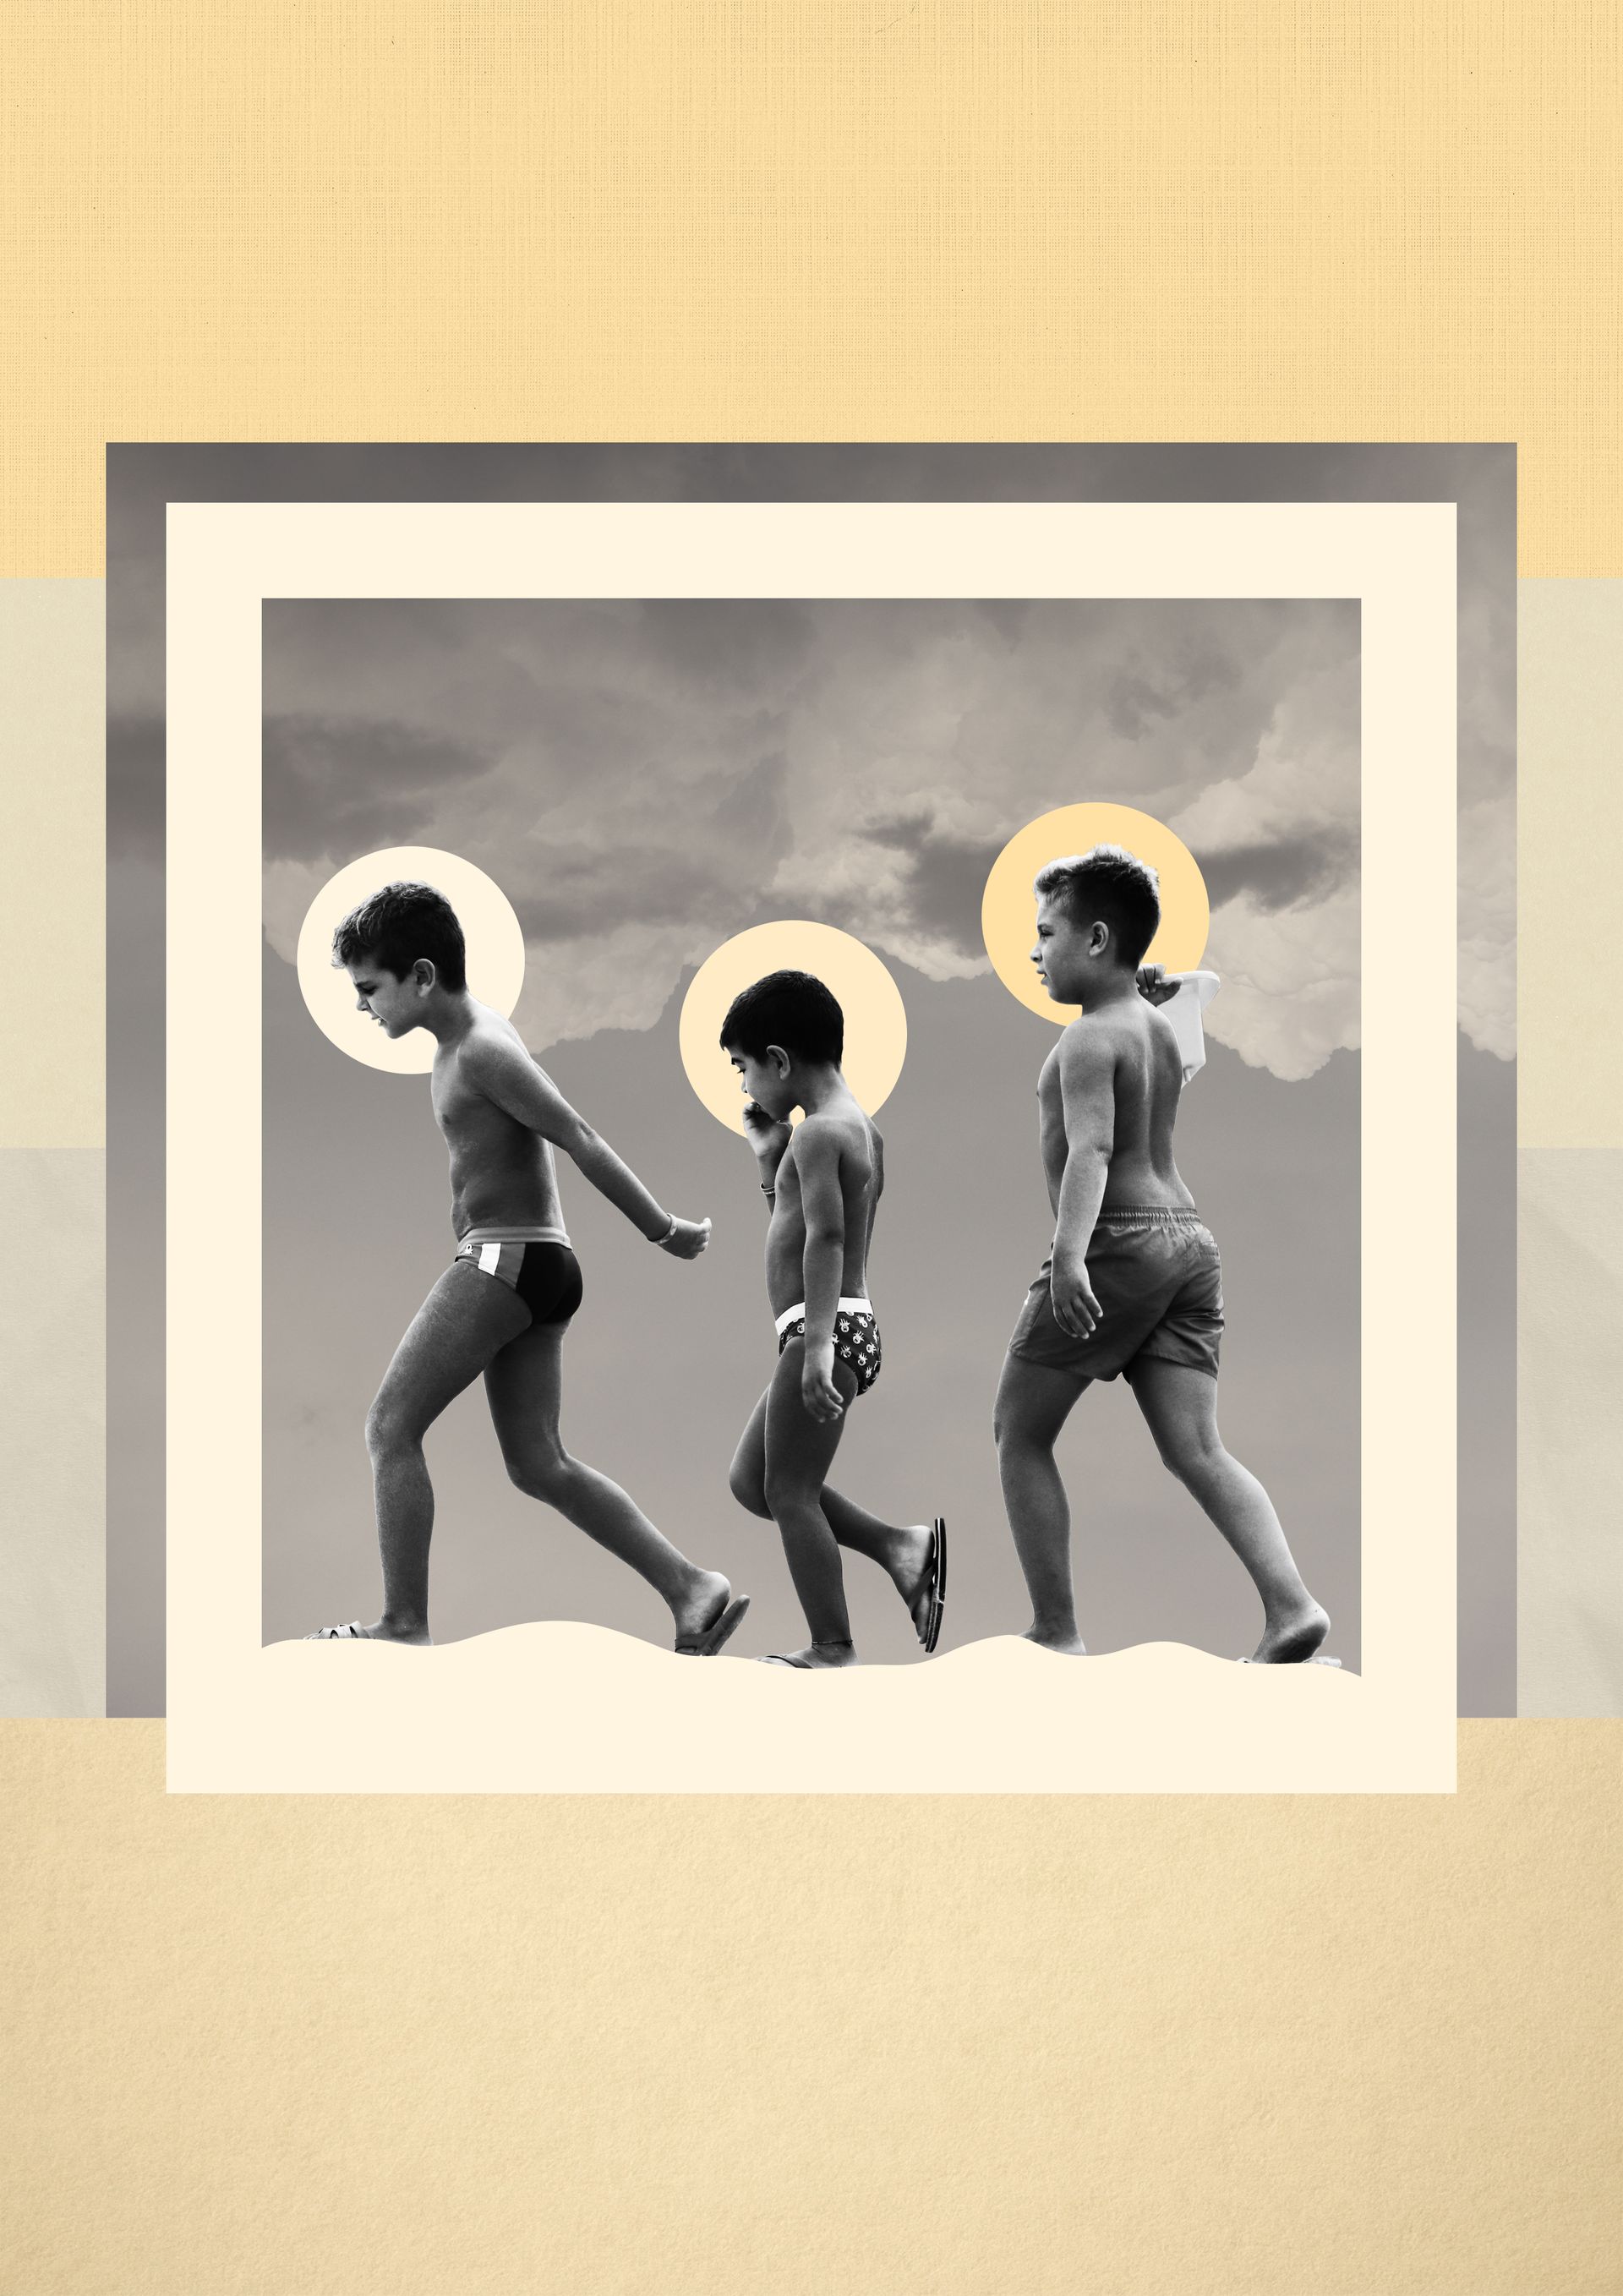 Kids_tools_beach_A2.png